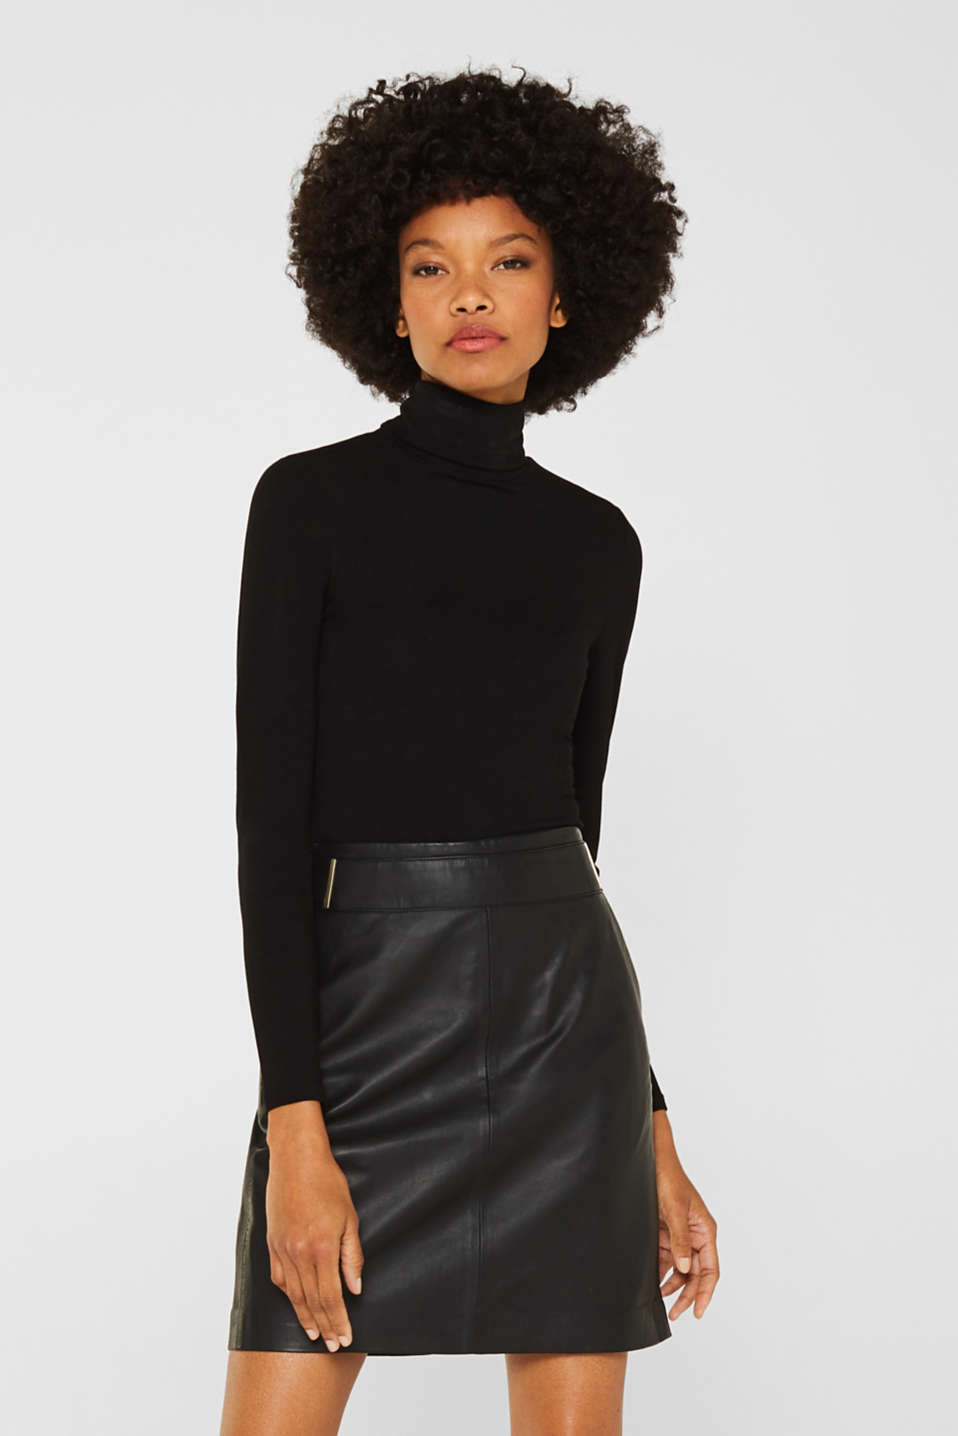 Esprit - Made of leather: skirt with metal elements